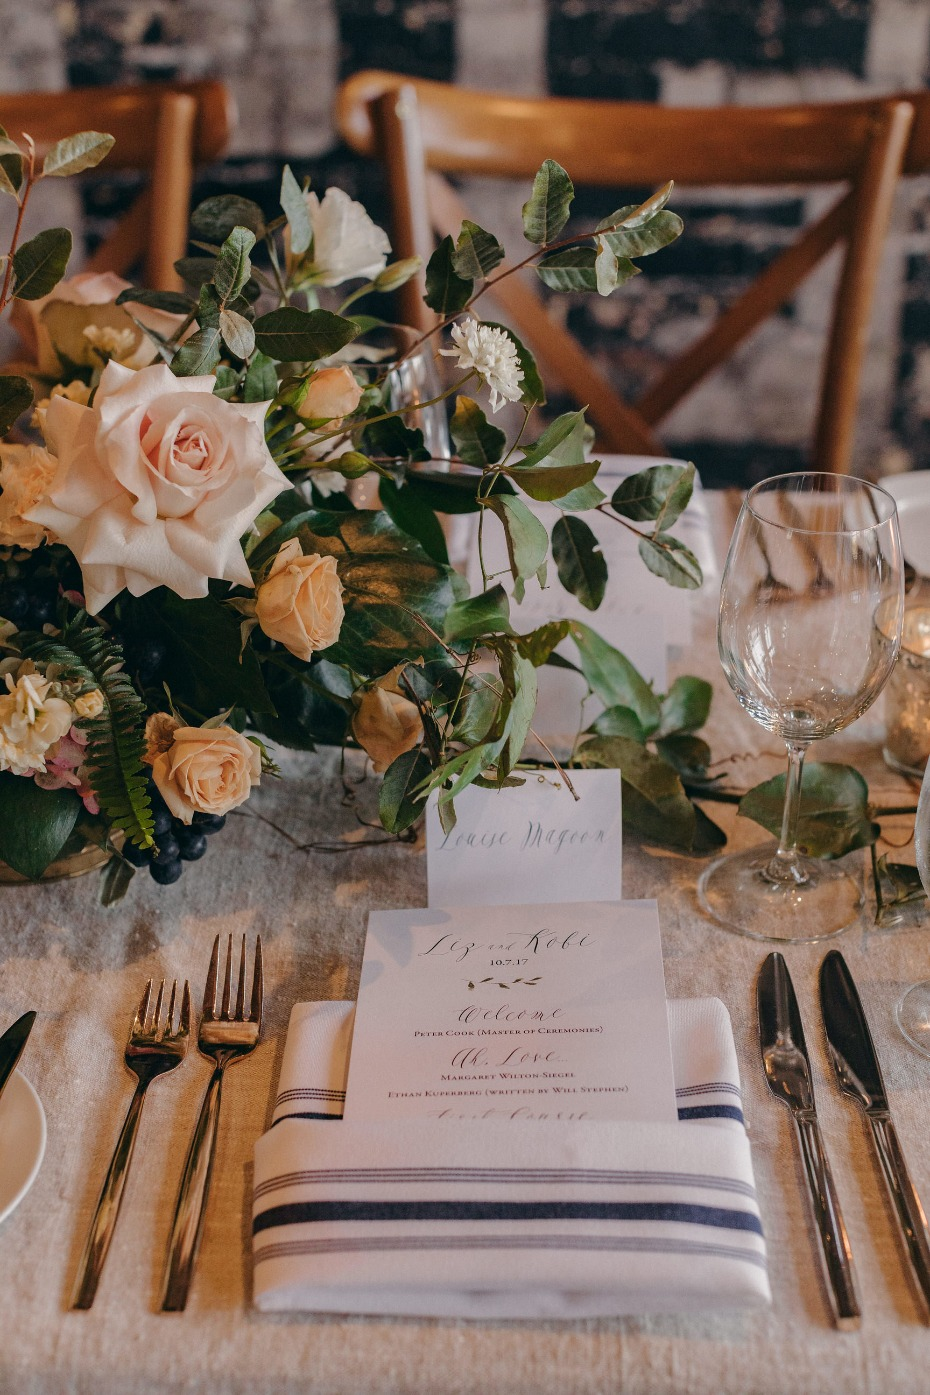 Simple chic place setting